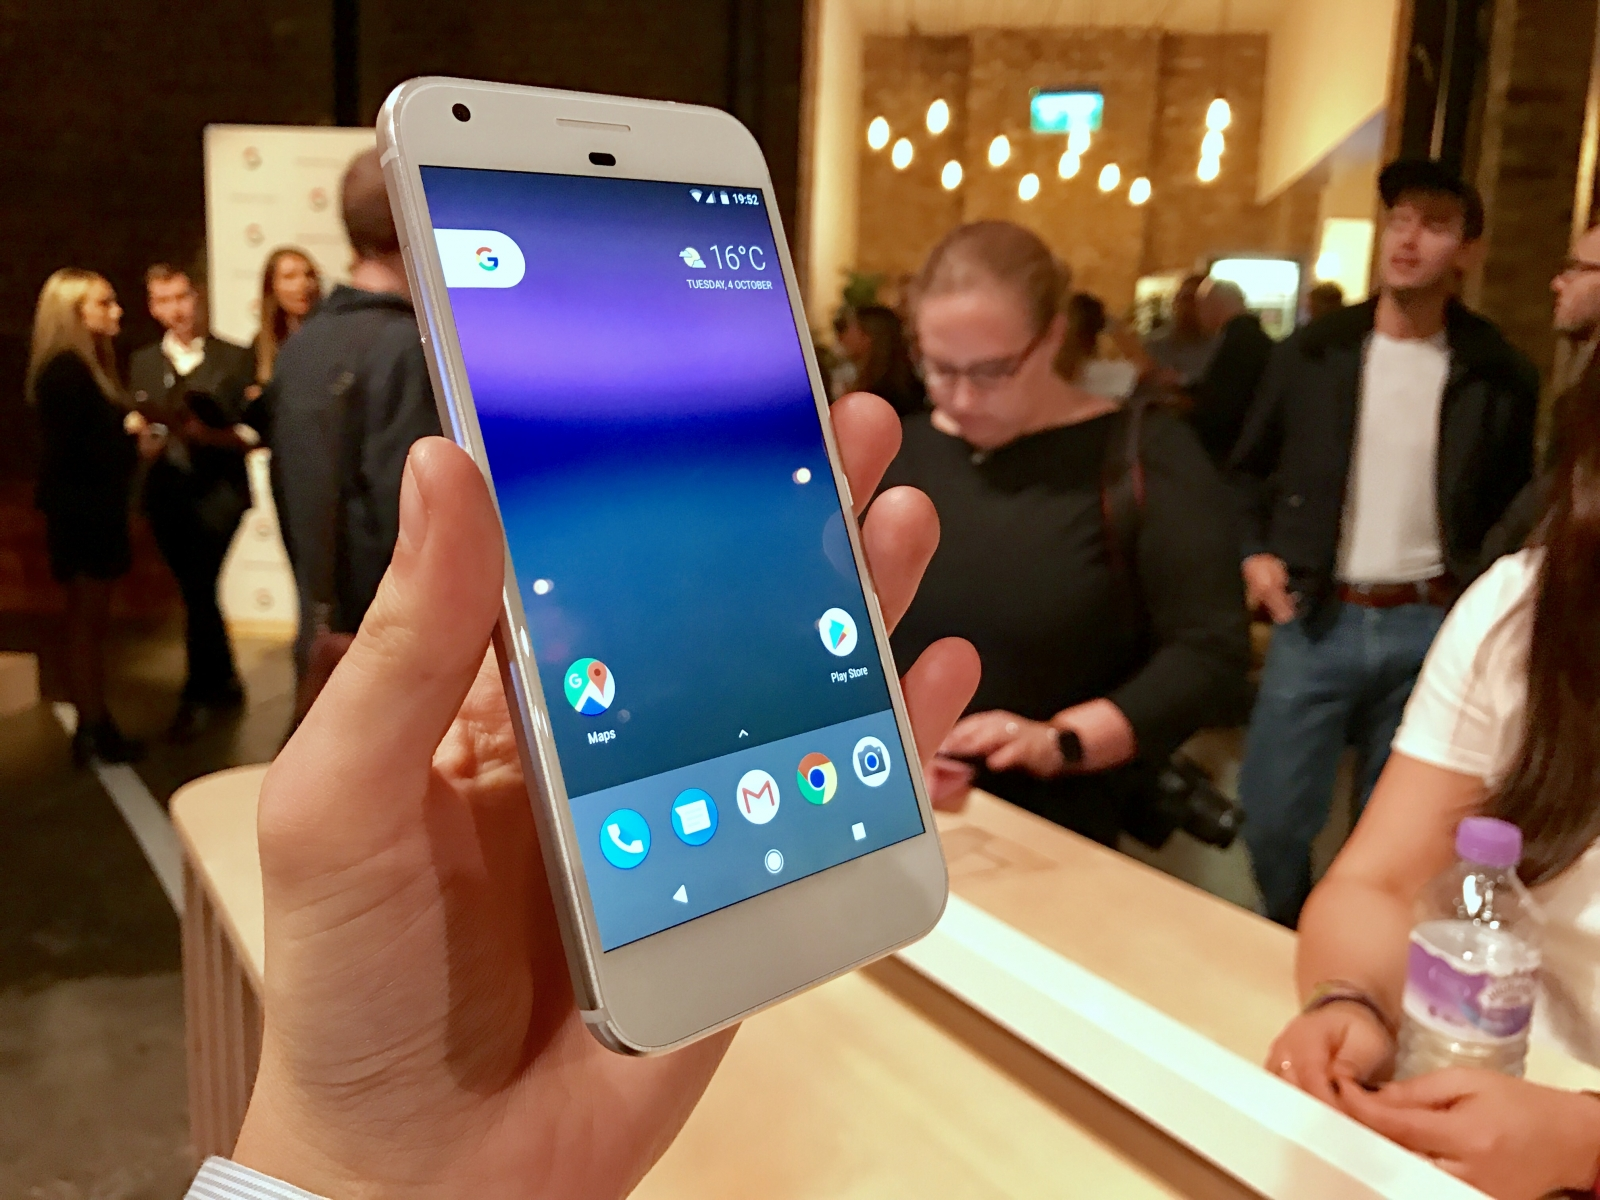 Google Pixel phone hacked in 60 seconds